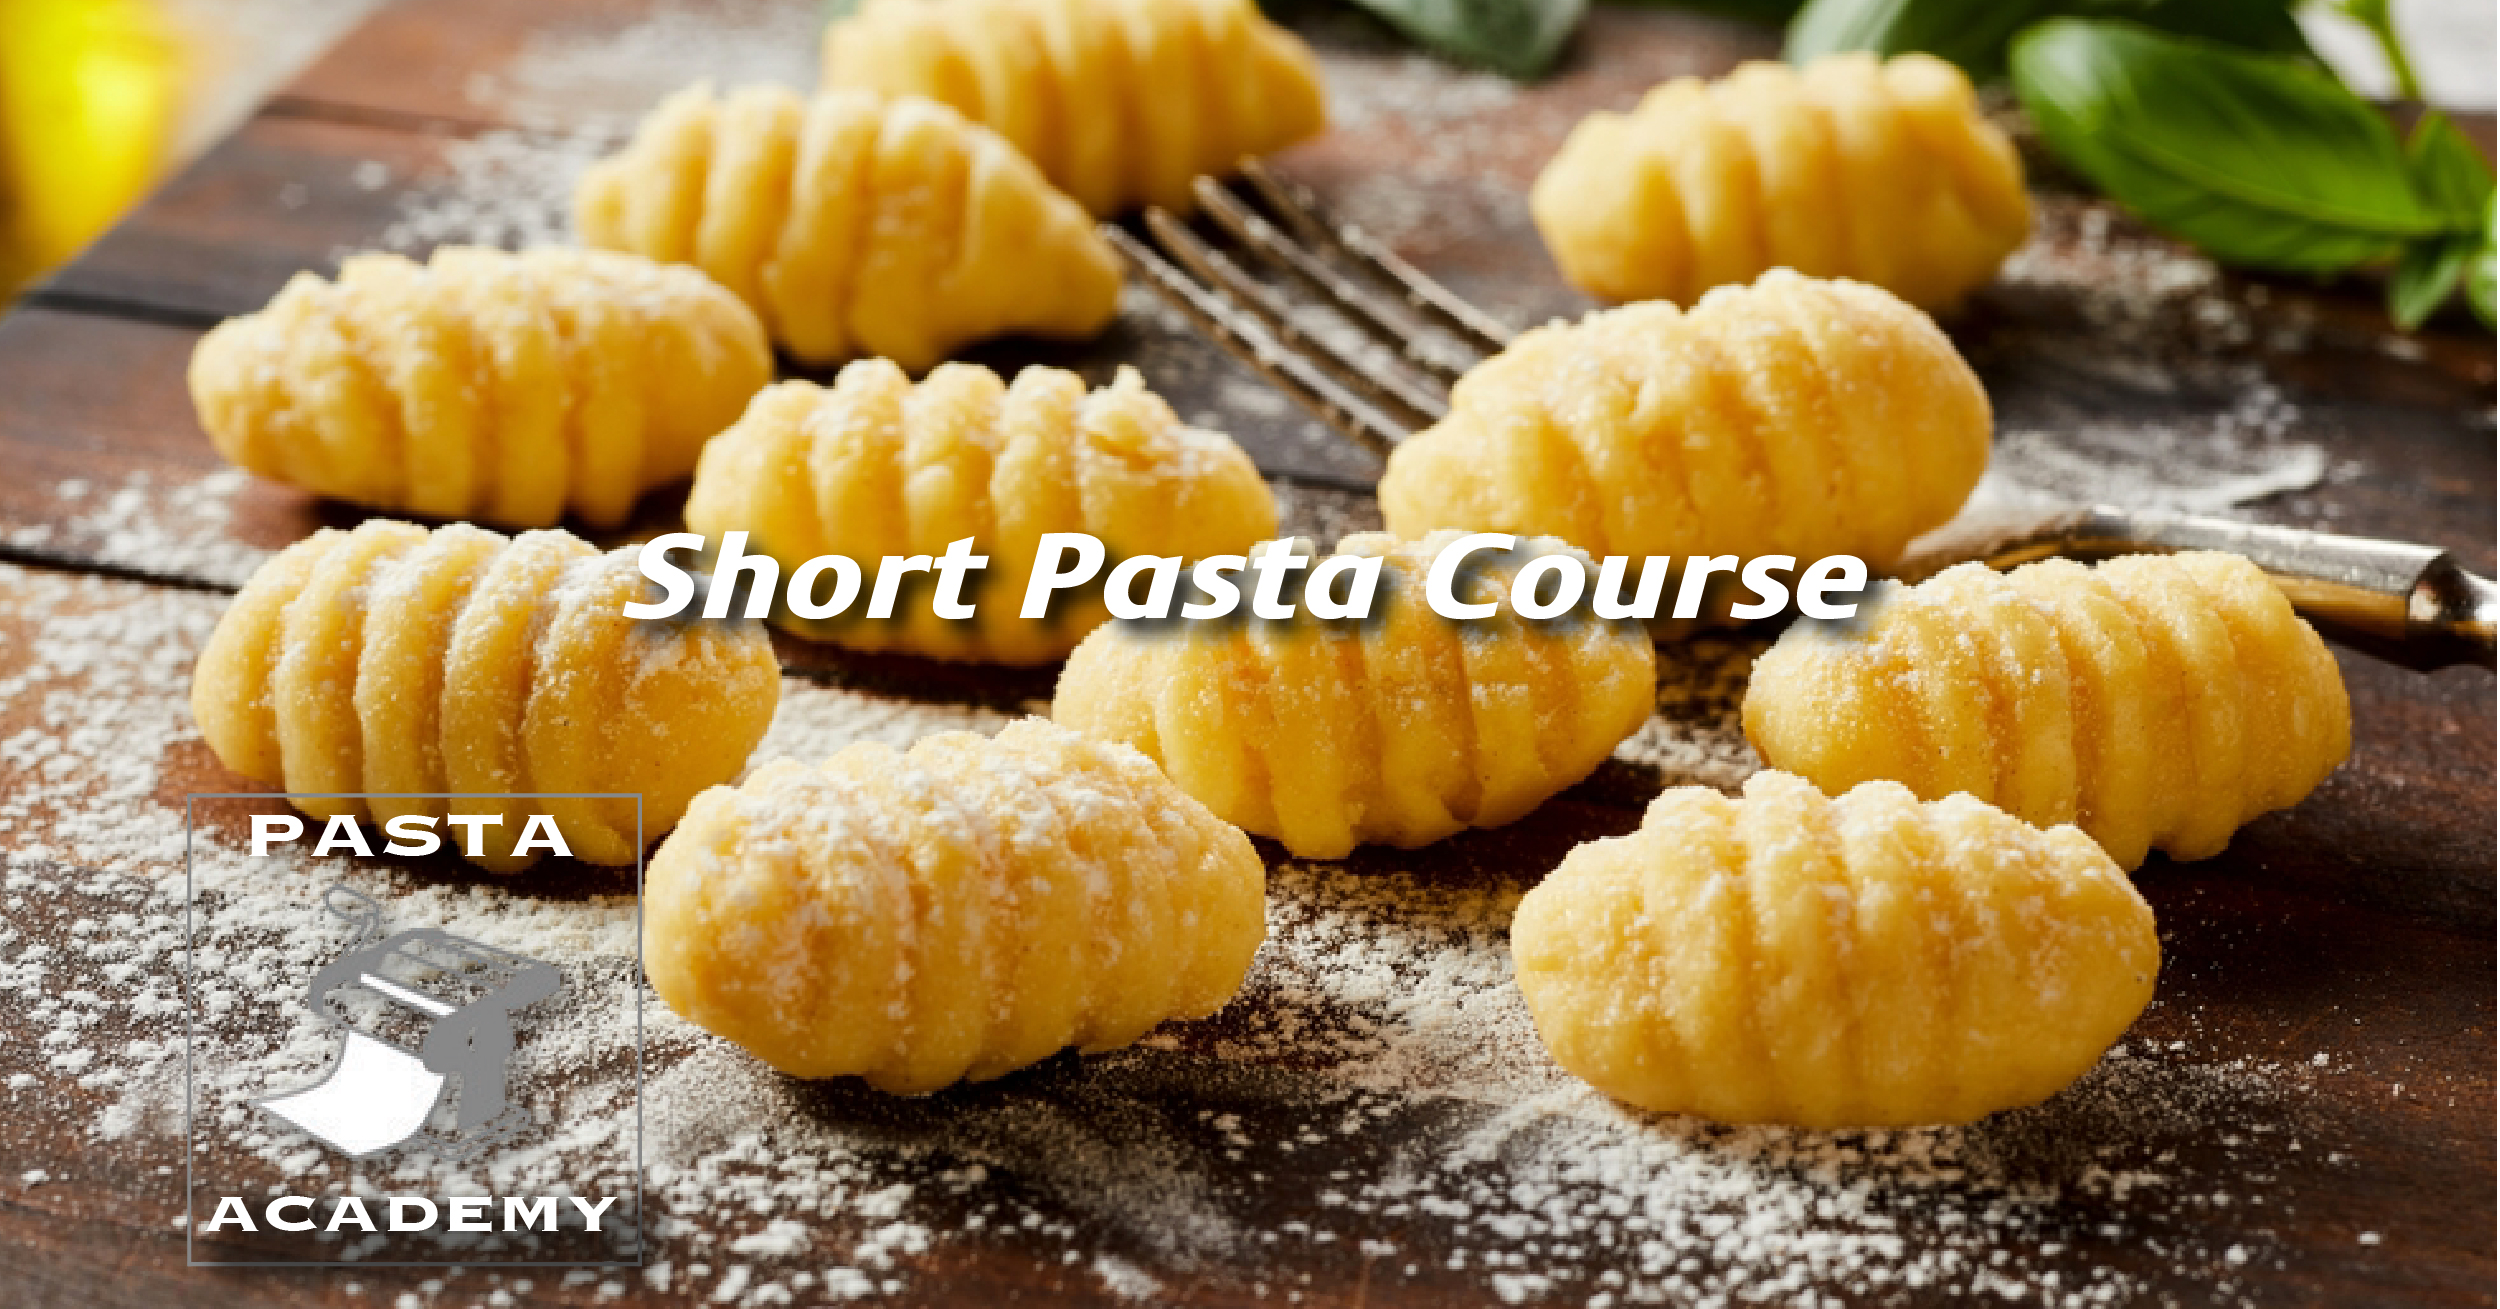 Consumer - Short Pasta Course   Learn the specifics of numerous types of pasta in the category, including penne, rigatoni, trofie, cavatelli, macaroni and other similar types. Students will explore the different types of sauces, additions and garnishes that the pastas are commonly paired with.